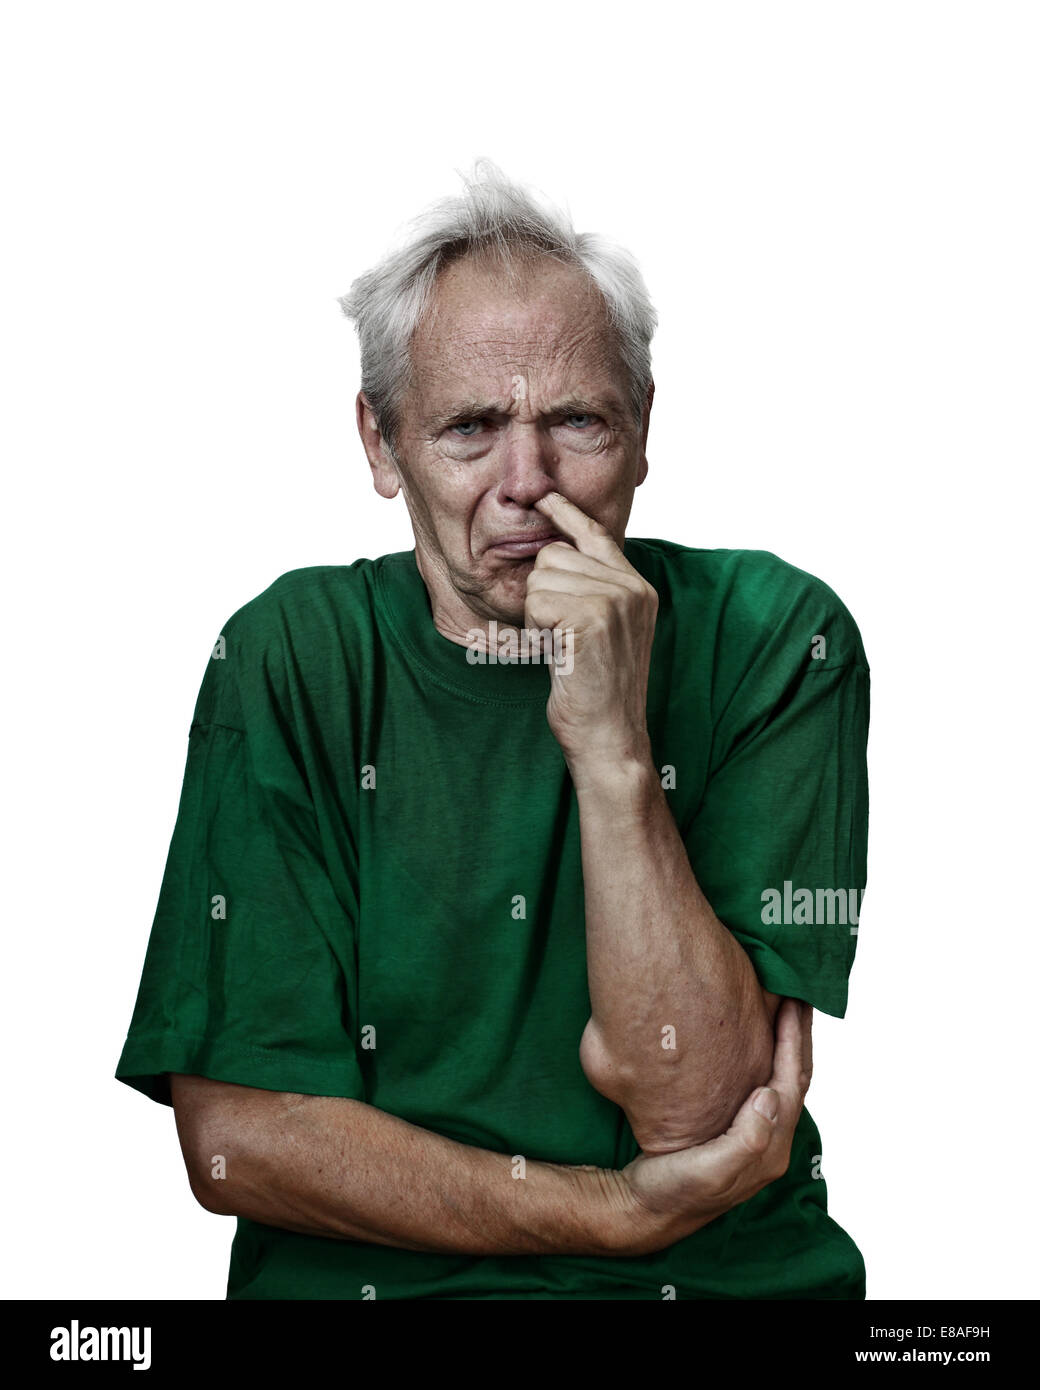 Mad looking senior male picks his nose. Grunge darkened portrait isolated on white background - Stock Image